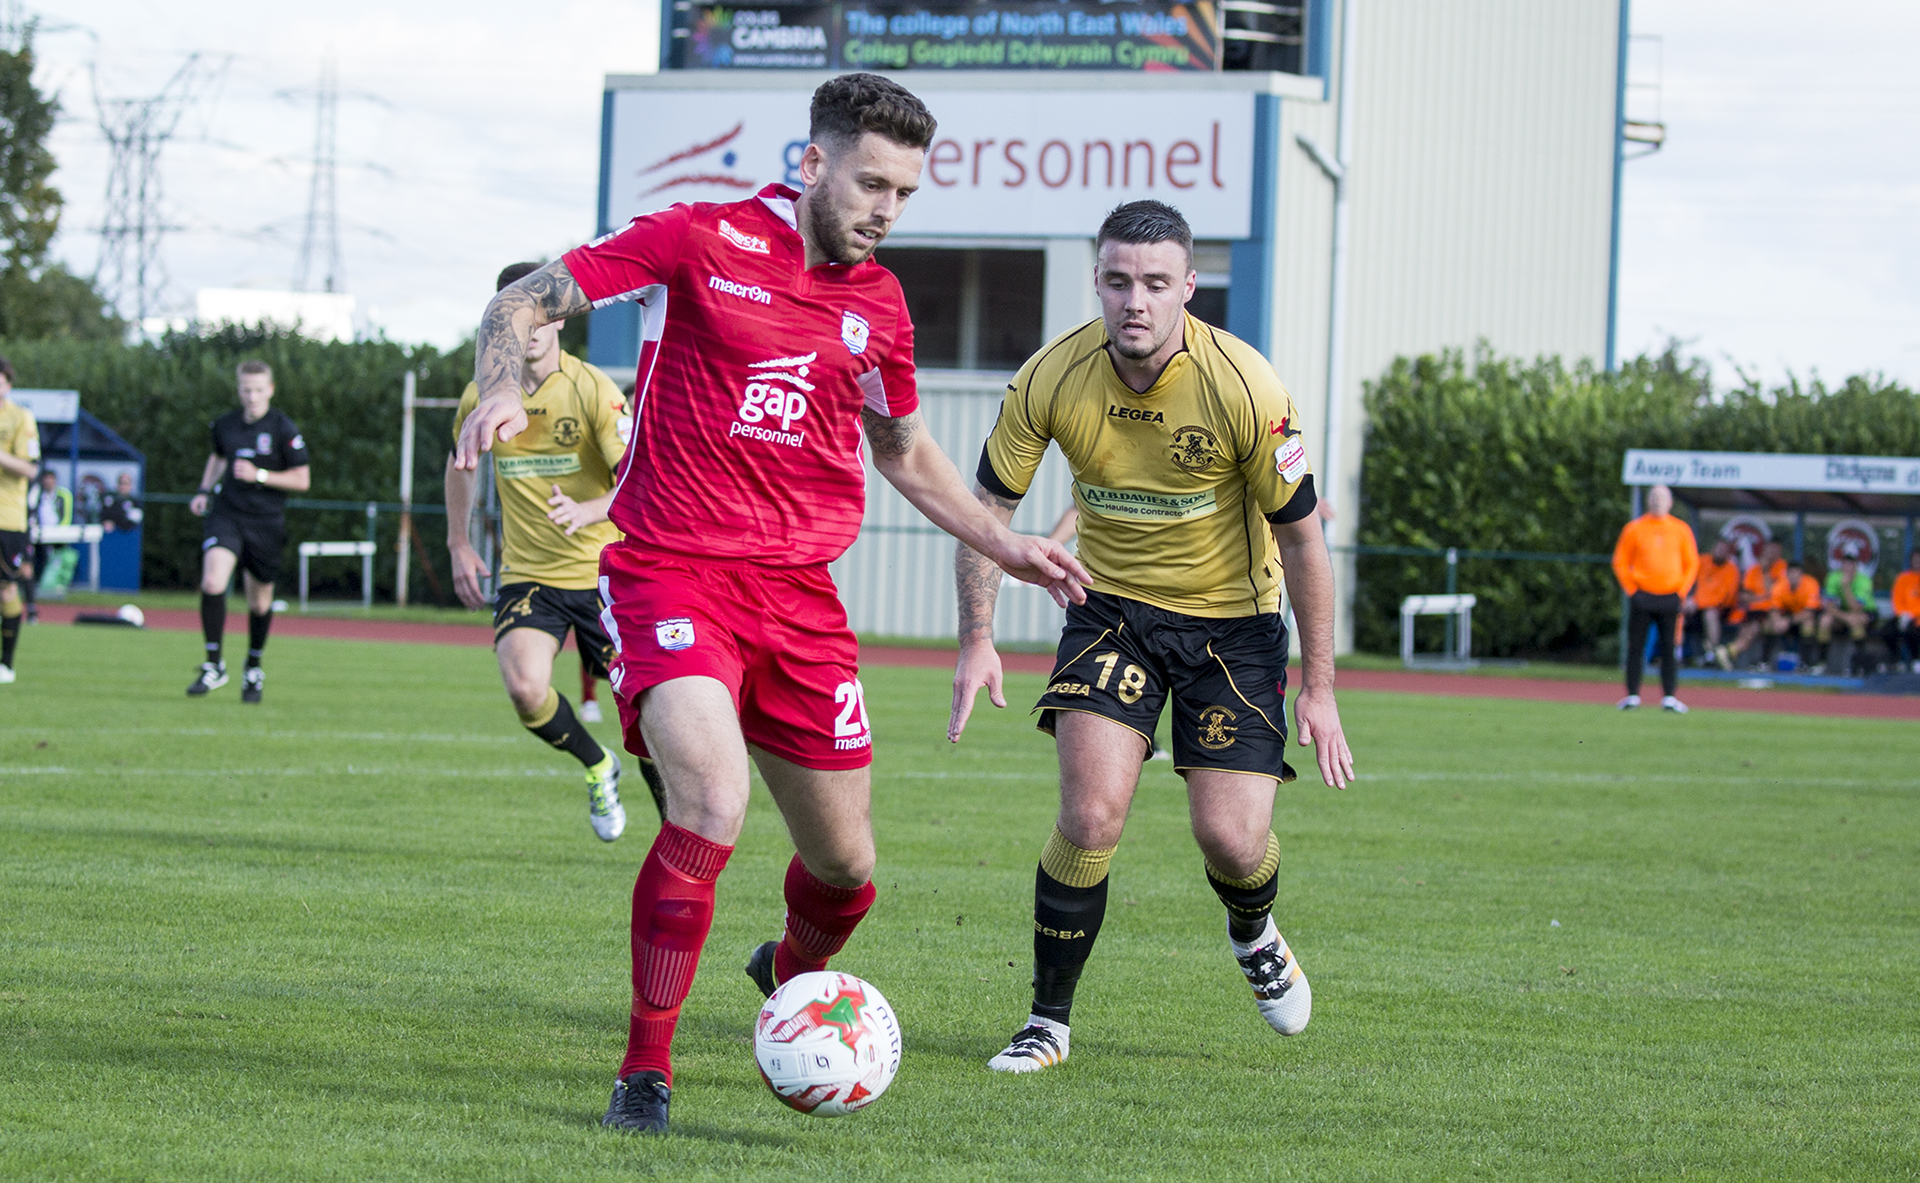 Wes Baynes takes on the Carmarthen defence - © NCM Media